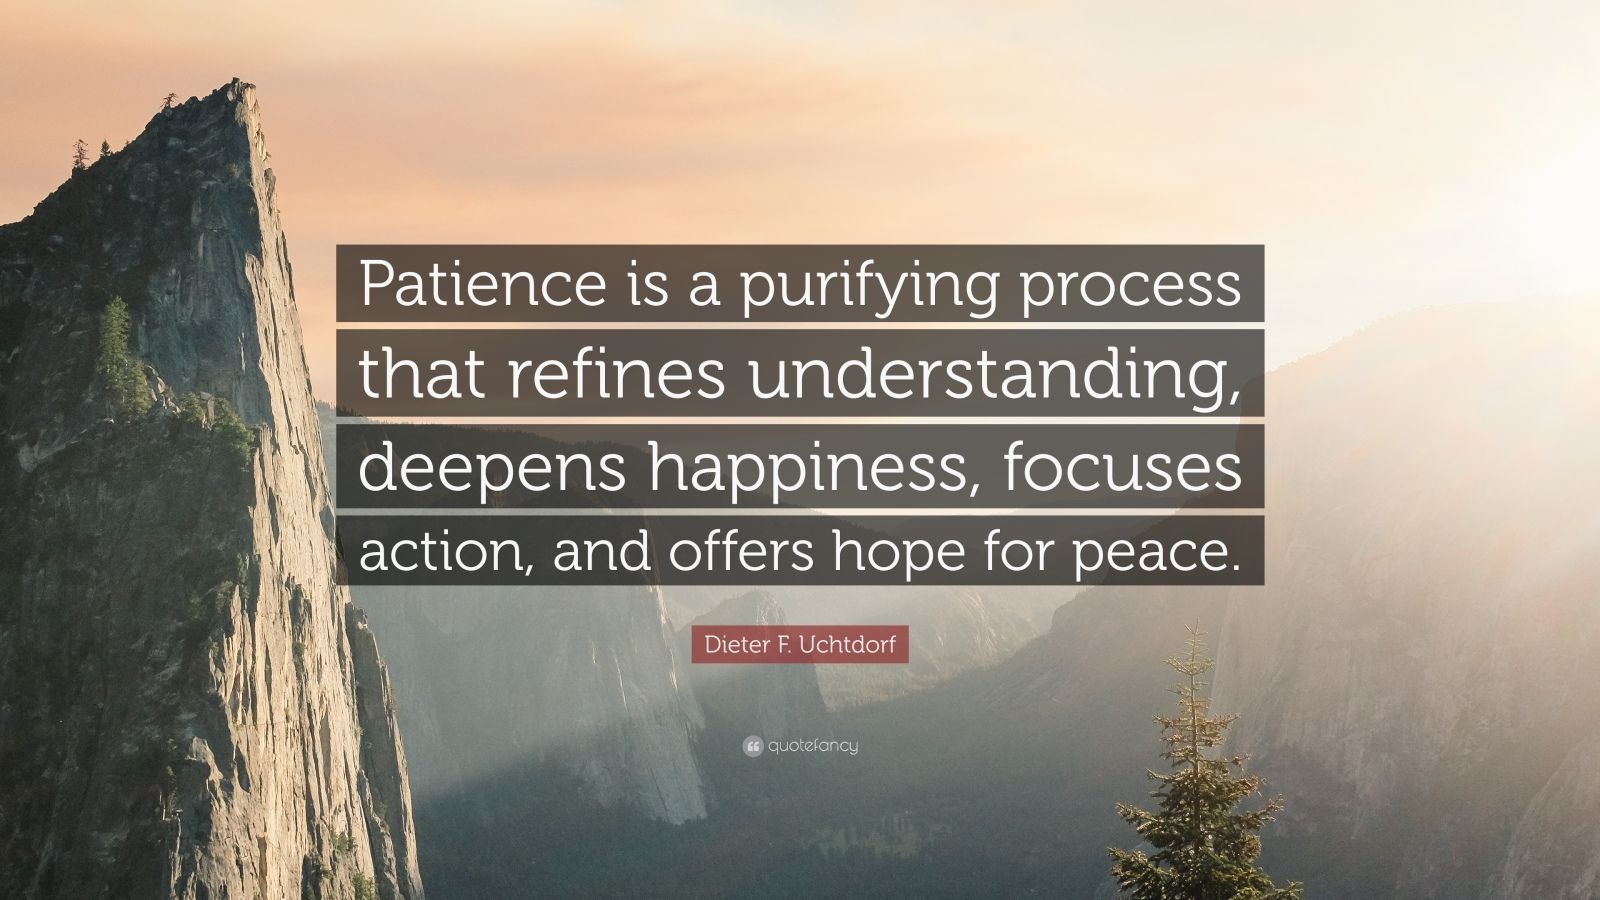 """Dieter F. Uchtdorf Quote: """"Patience is a purifying process that refines understanding, deepens happiness, focuses action, and offers hope for peace."""""""